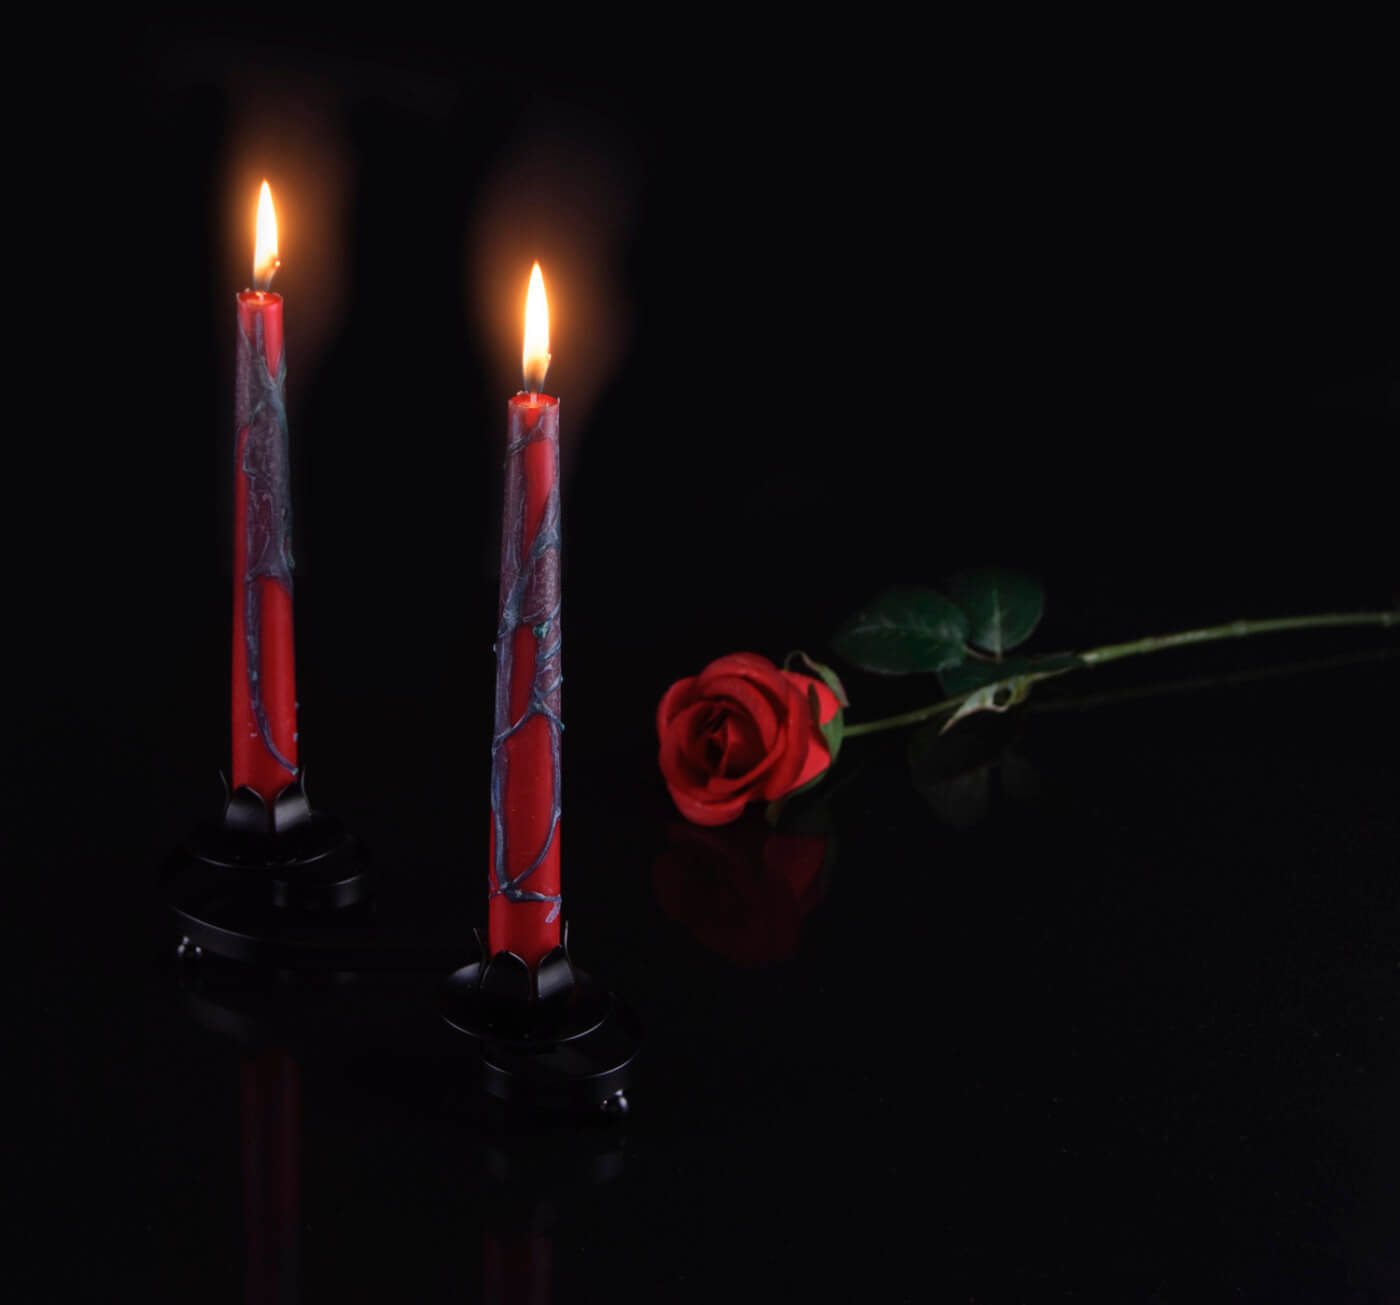 Gothic product photograph of handmade candles